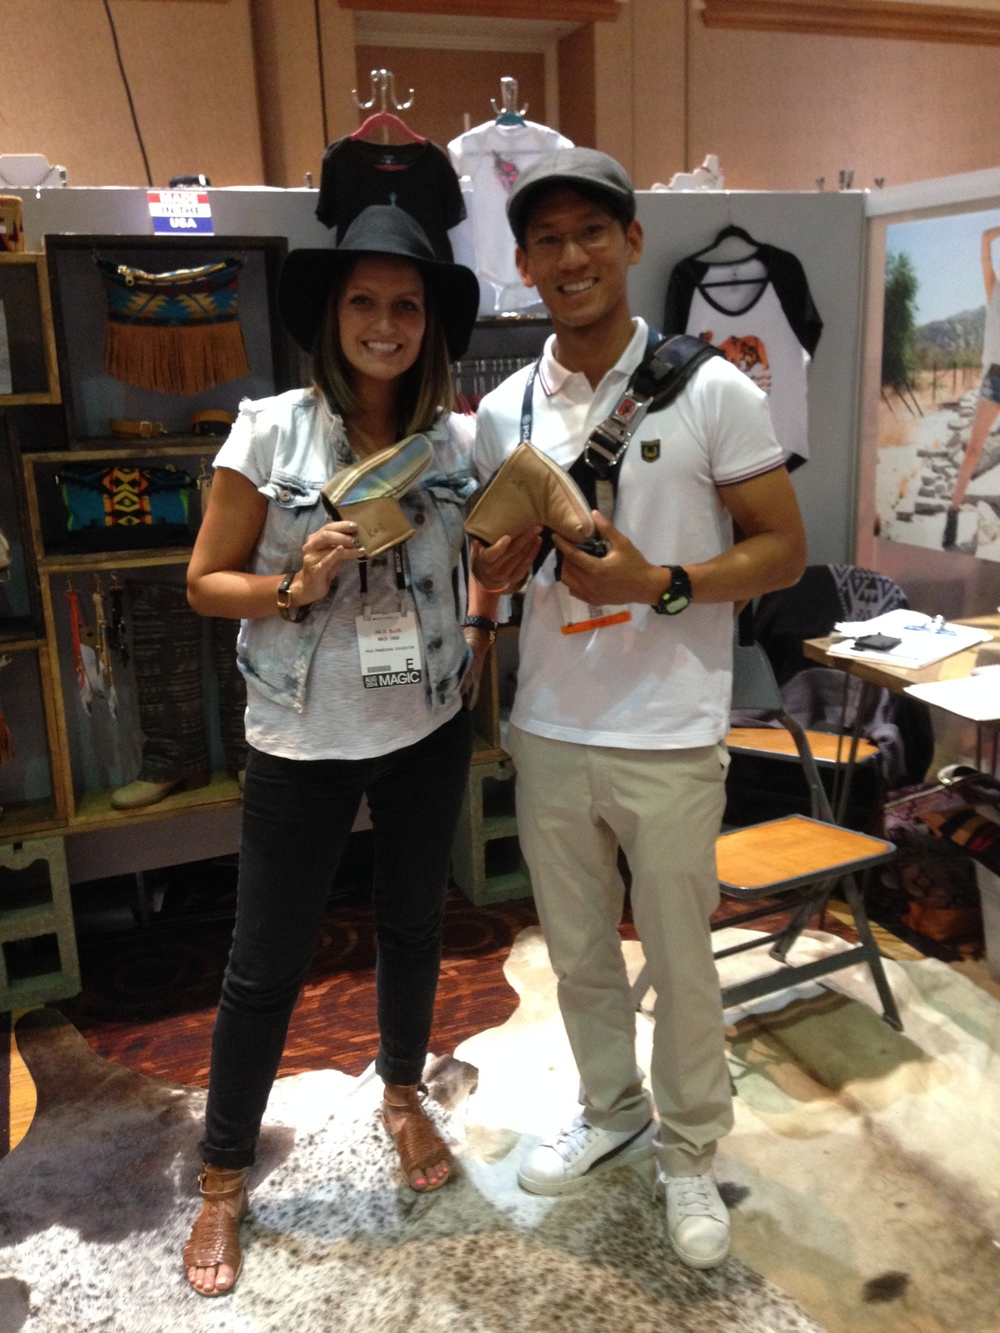 Julie Ellis (Rais Case designer) and Phillip Lapuz at Capsule, Las Vegas